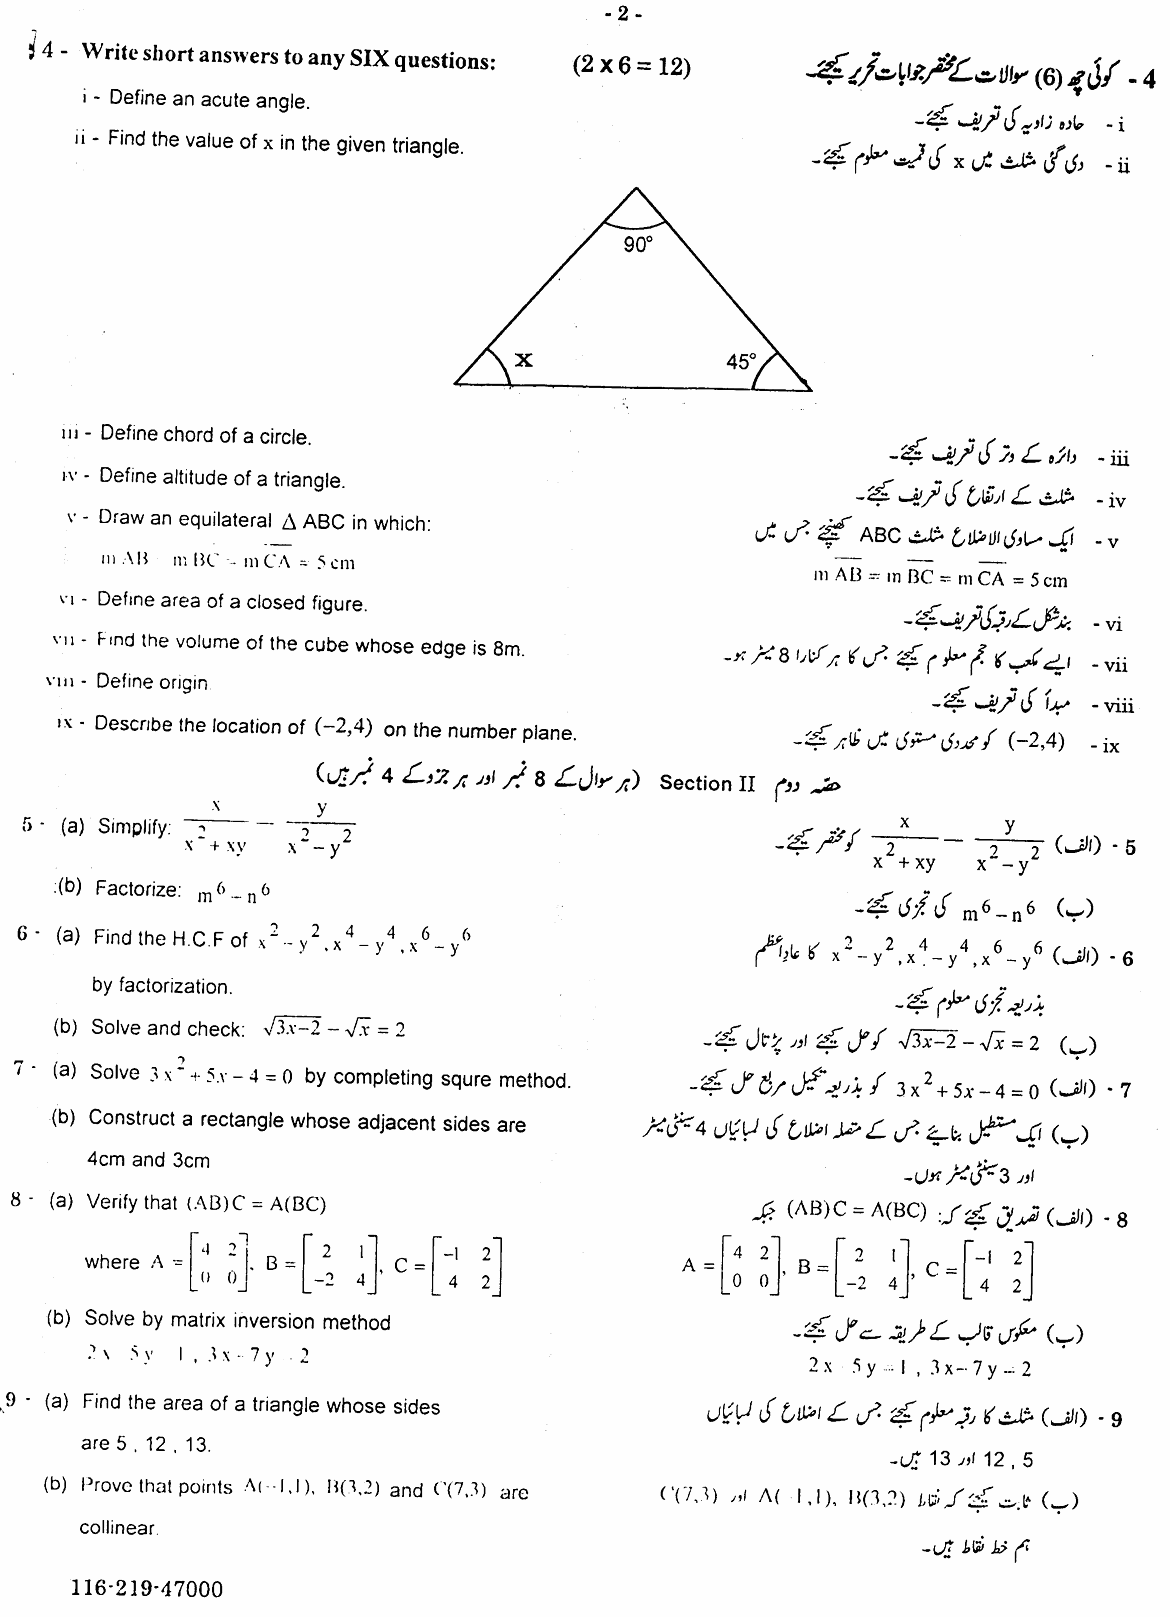 10th Class General Mathematics Paper 2019 Gujranwala Board Subjective Group 2